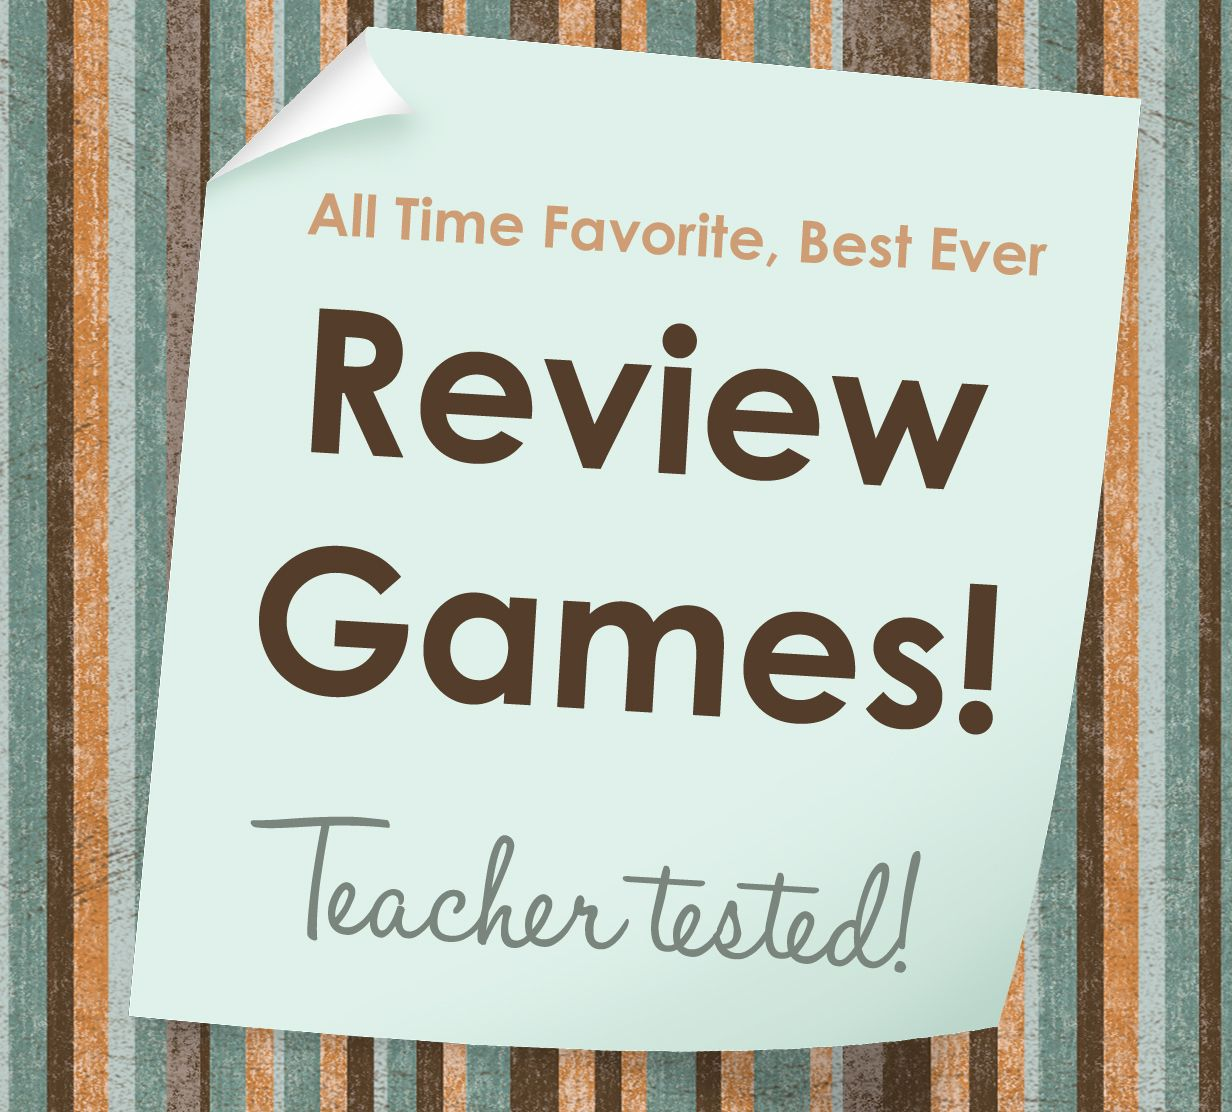 Review games 1 sticker Math review game, School testing